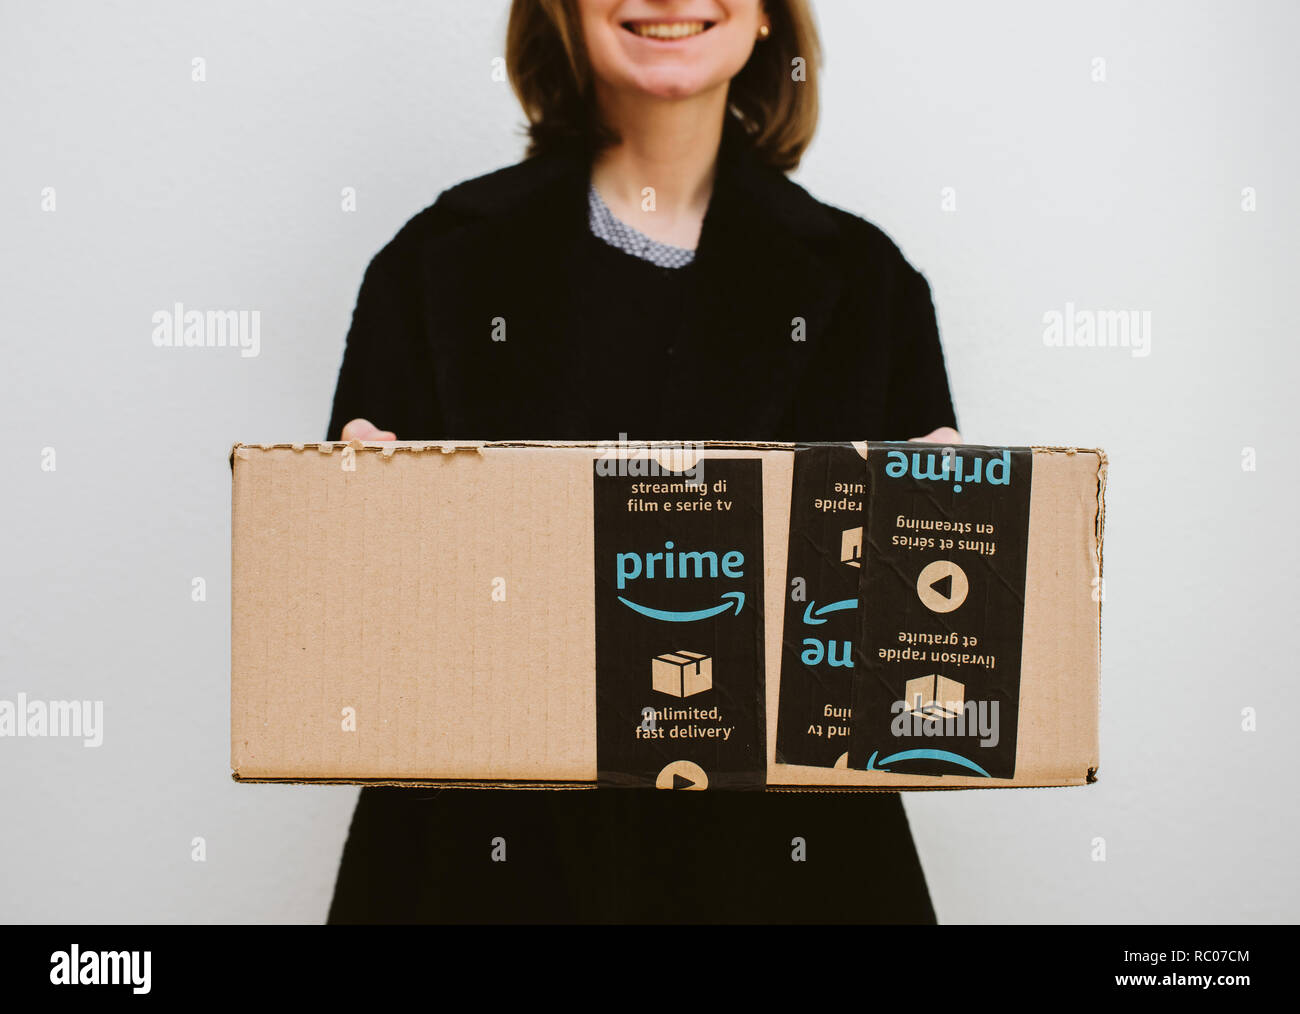 Amazon Usa Livraison France Amazon Shipping Box Stock Photos Amazon Shipping Box Stock